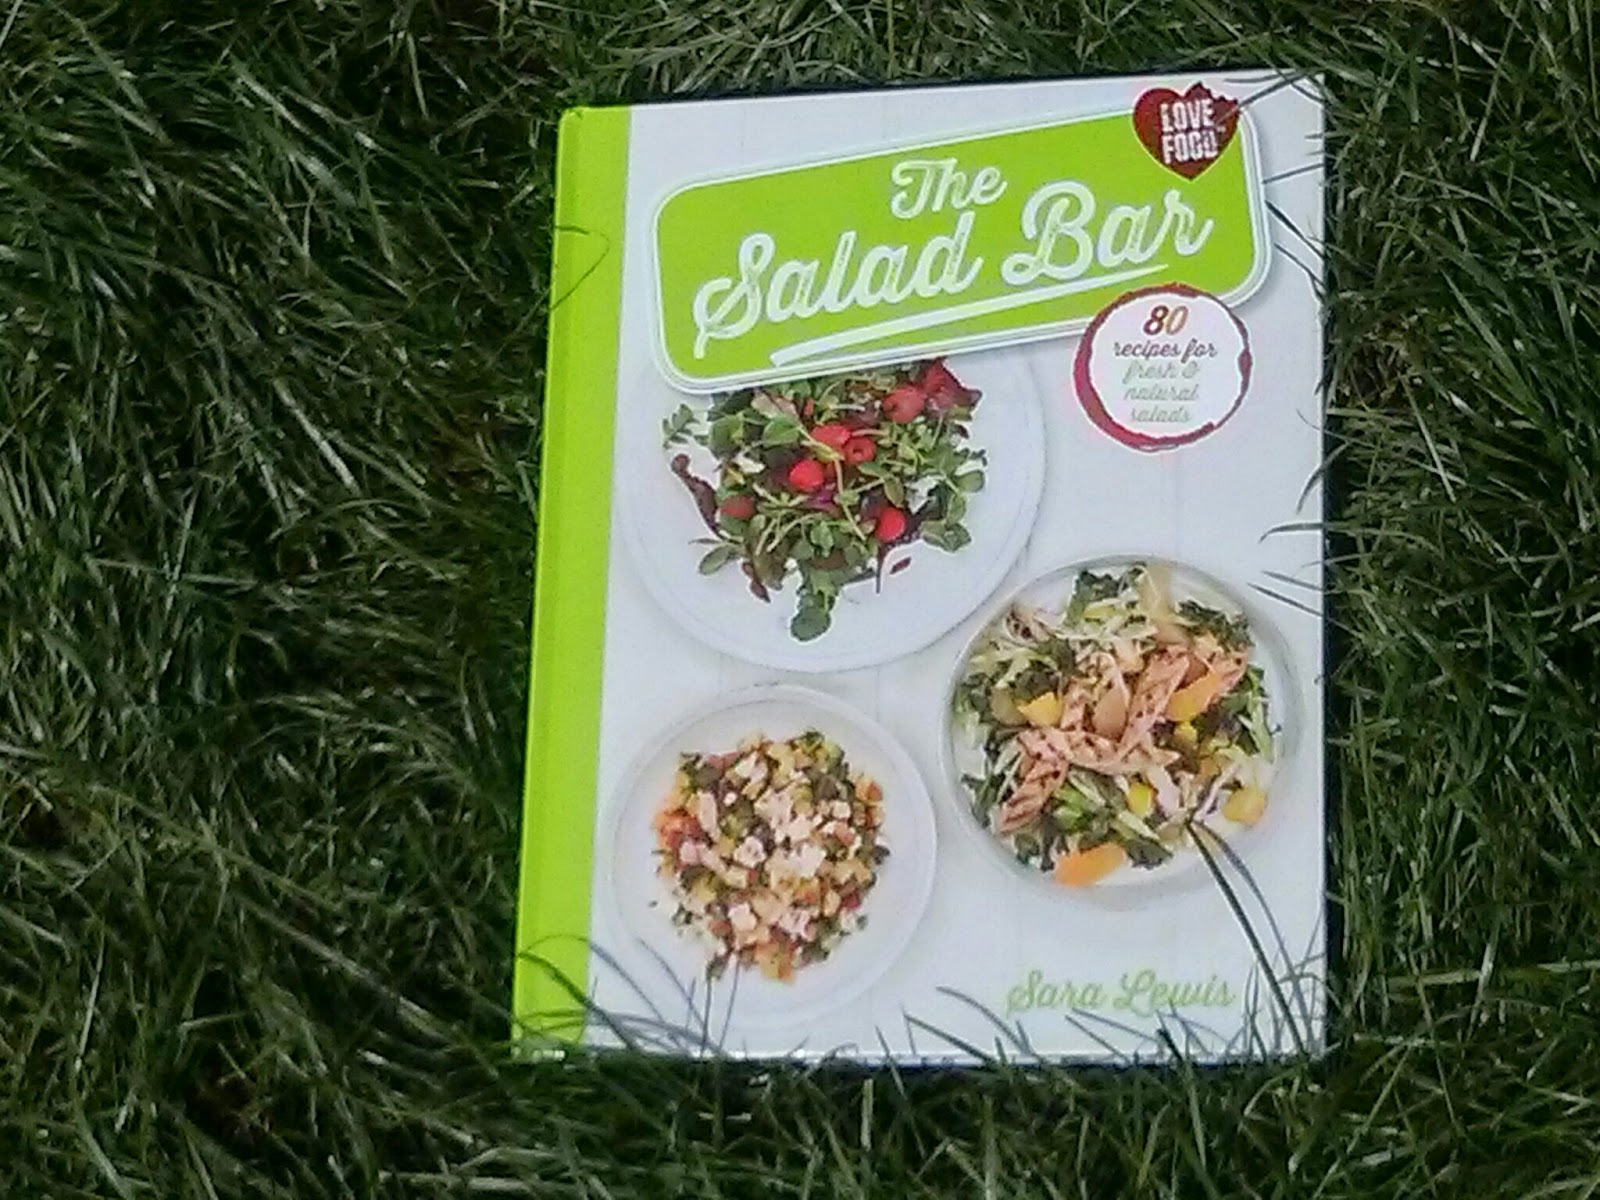 The Salad Bar Book (on my lovely green lawn)